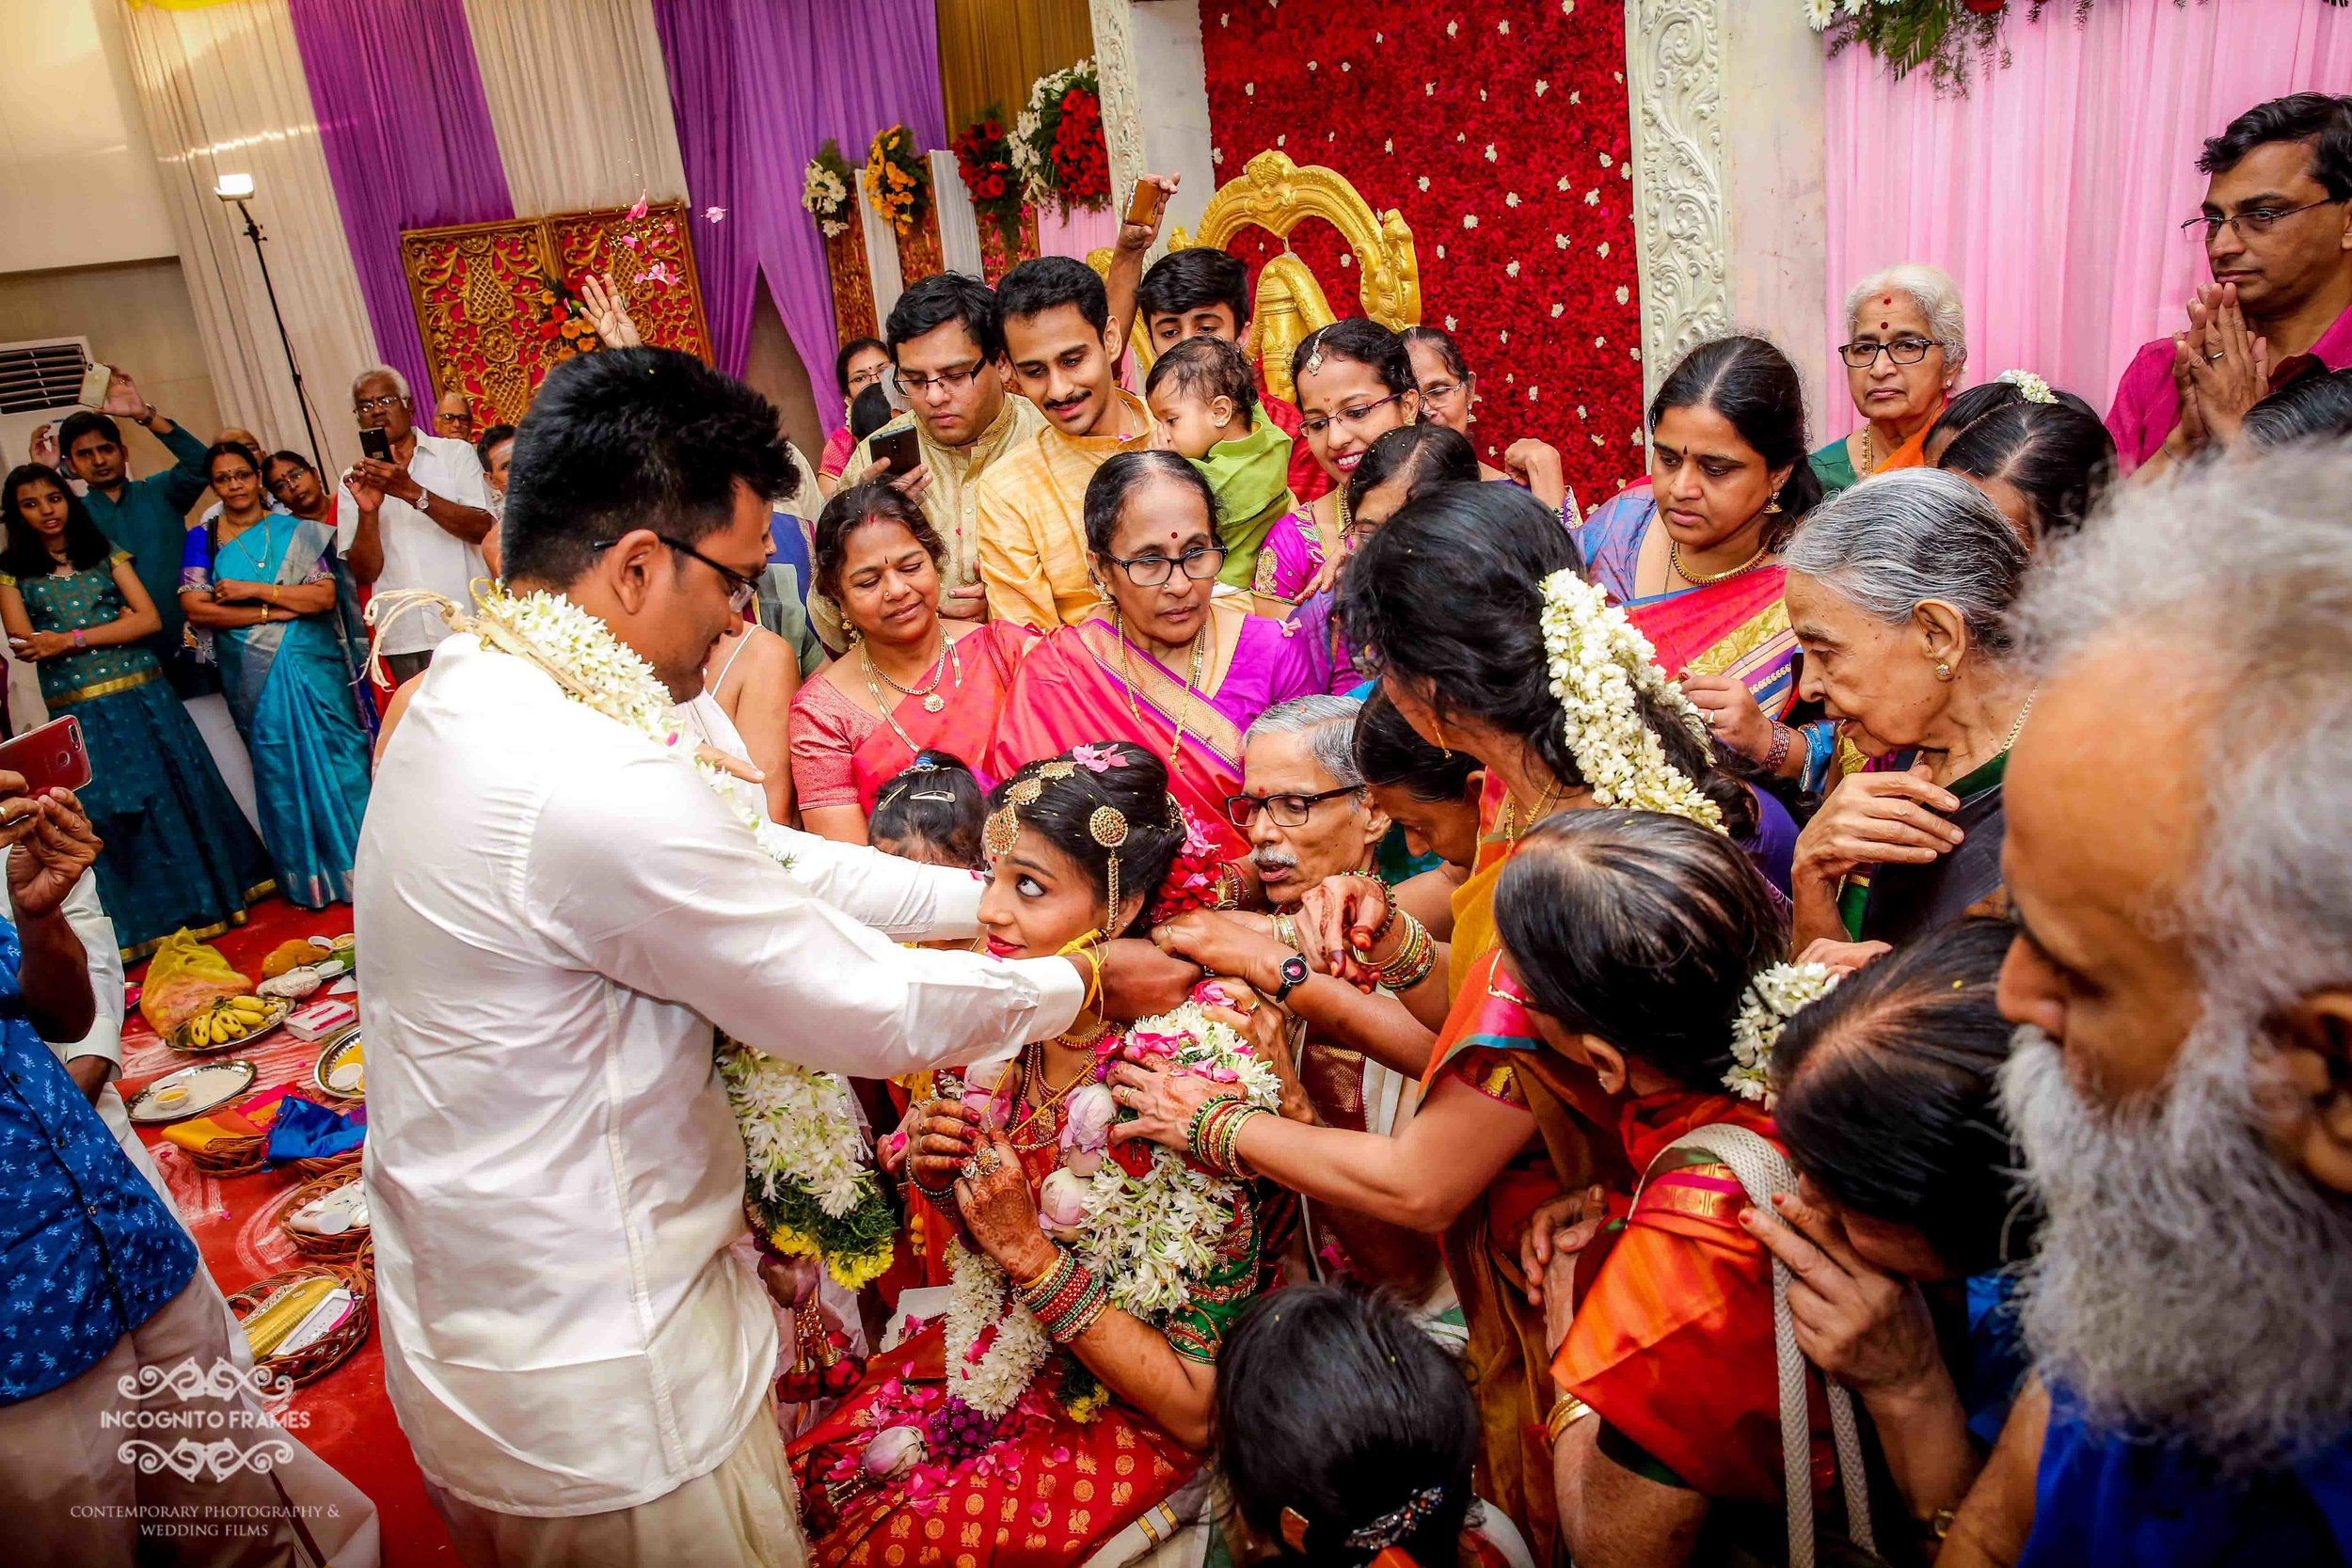 tambrahm-wedding-photographers.jpg